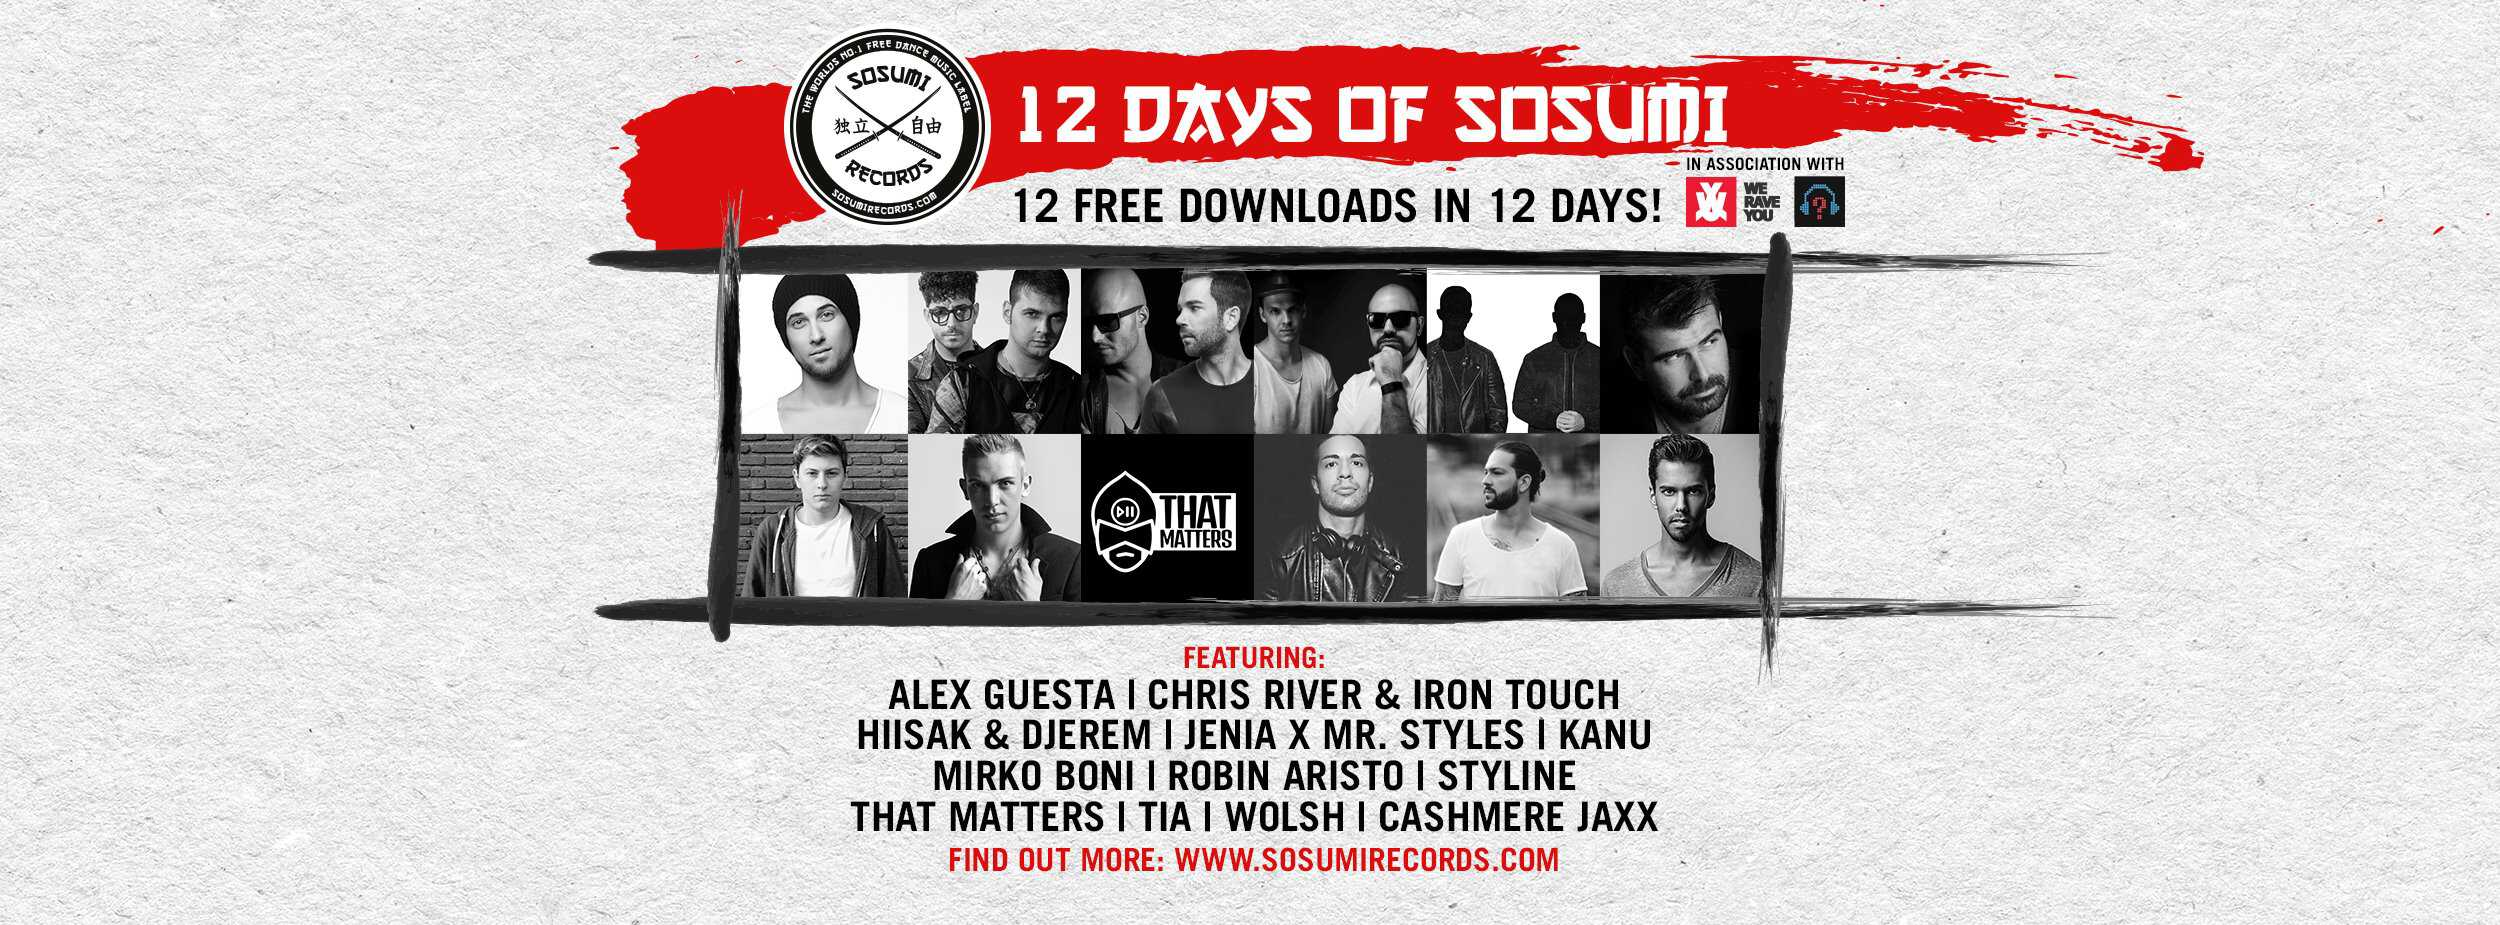 The #12DaysOfSosumi: All the free tracks by Kryder's label!